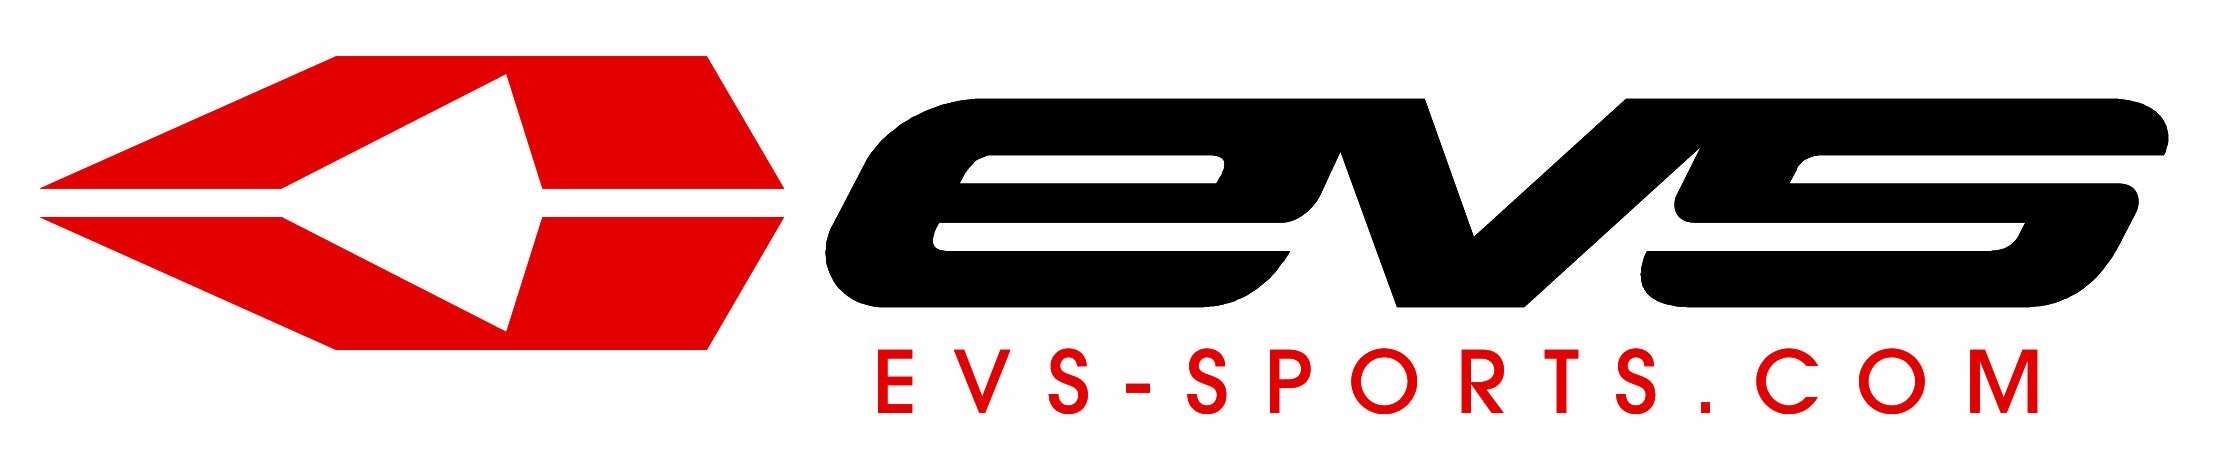 EVS Sports Black Shoulder Brace Large Breathable Air Mesh Construction with TPR Gripper Pull-Tabs SB03 by EVS Sports (Image #3)